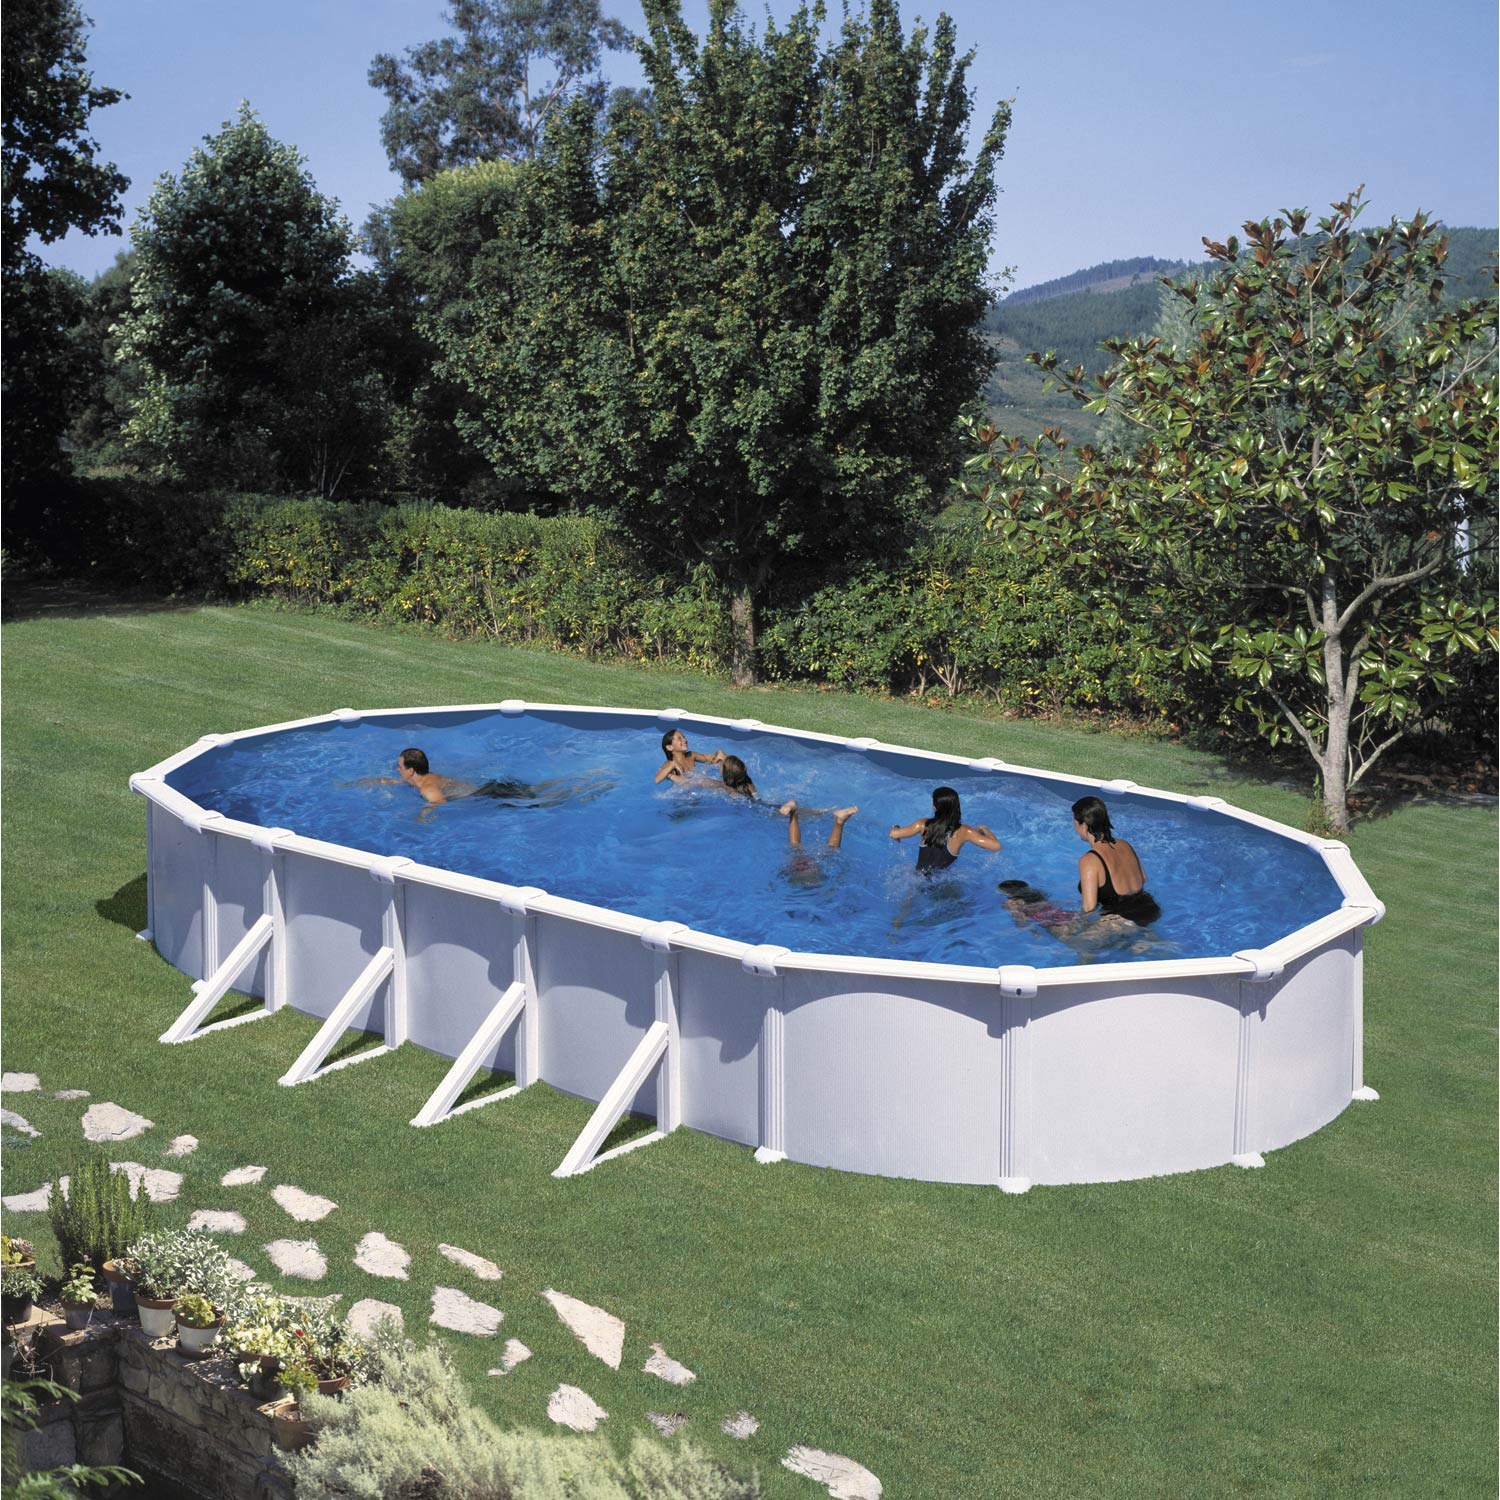 Margelle piscine leroy merlin margelle piscine leroy for Leroy merlin bache piscine